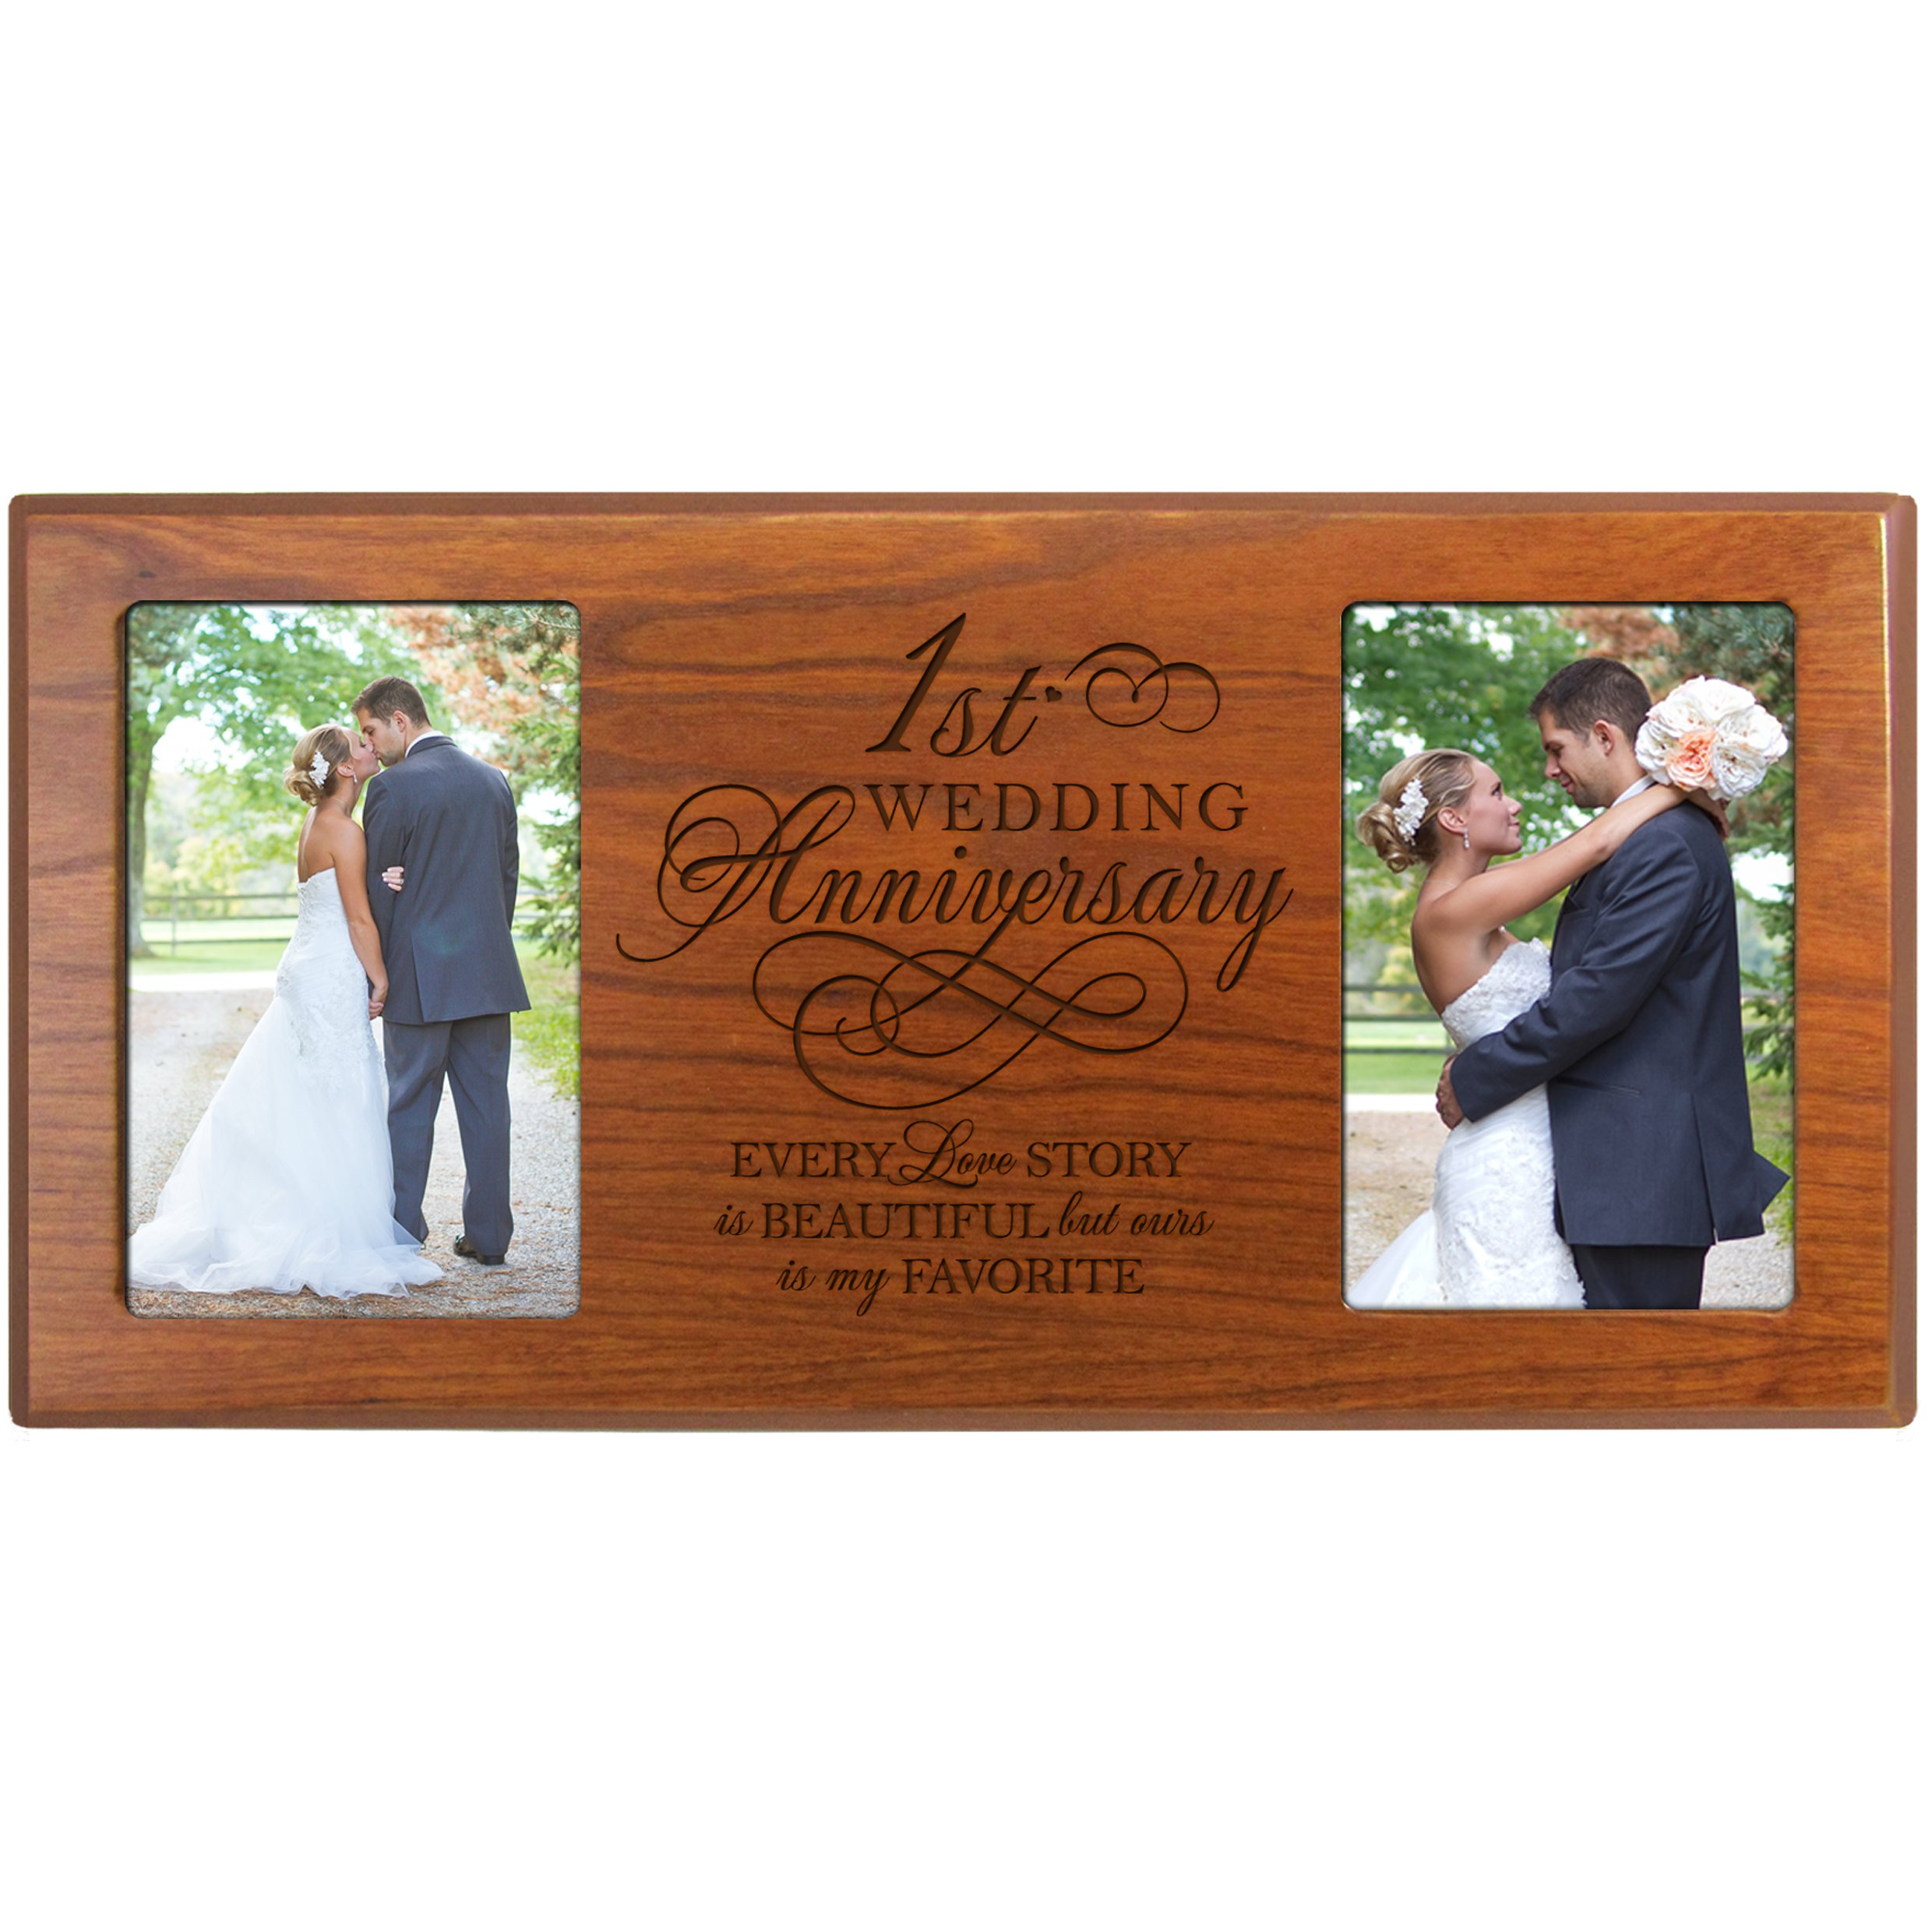 One Year Wedding Anniversary Gifts For Her: Buy 1st Wedding Anniversary Gift Picture Frame Gift For